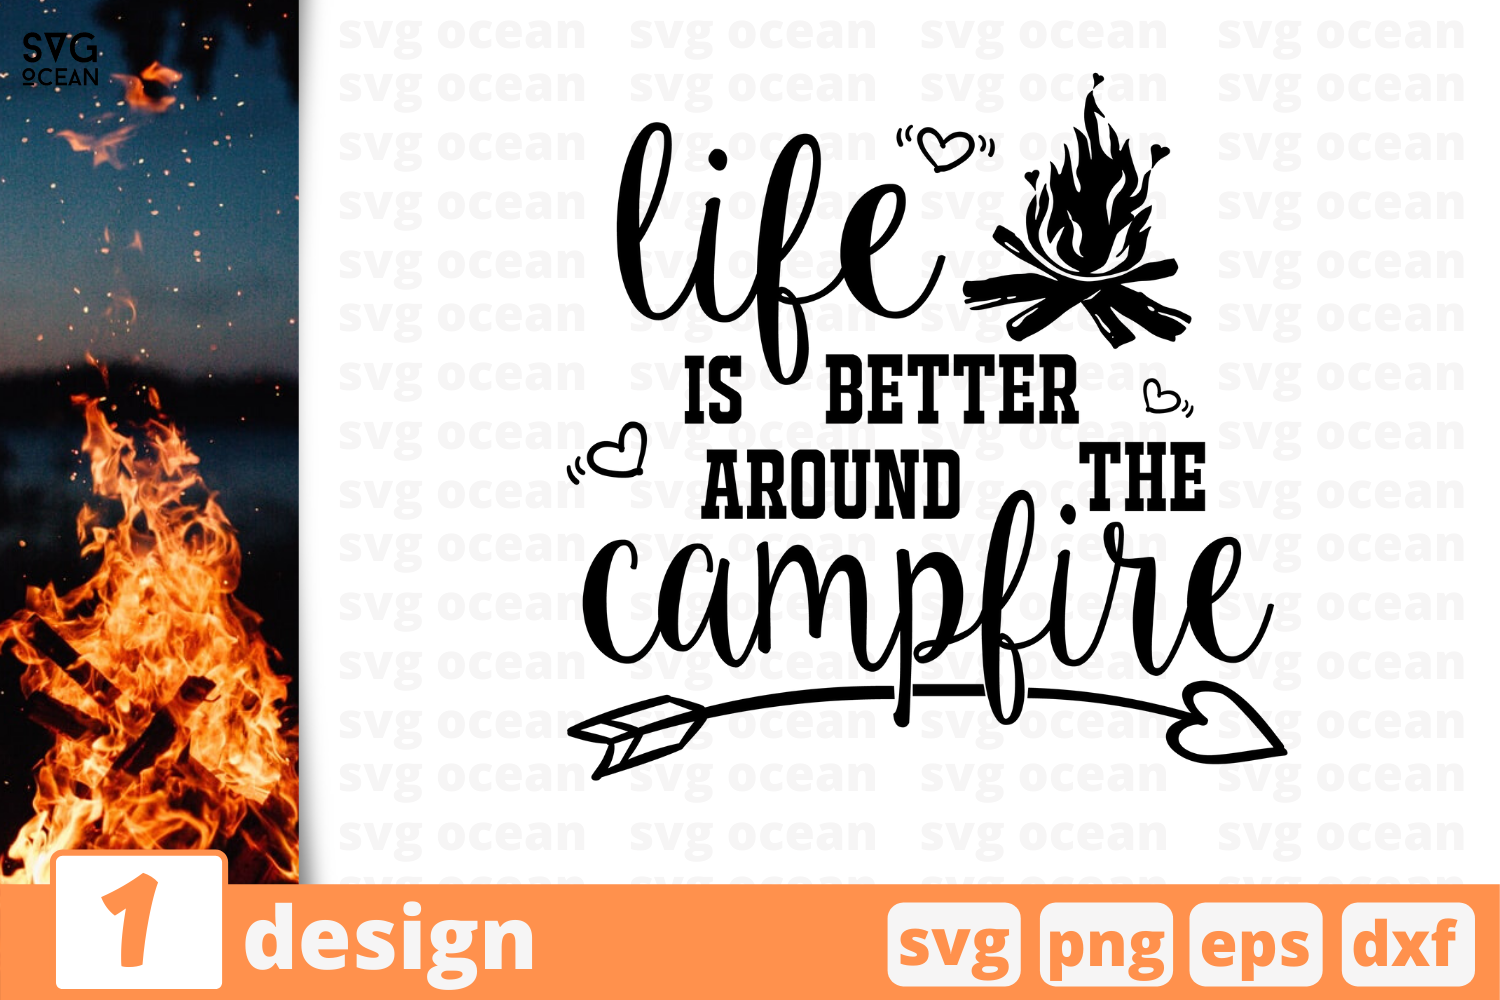 Download Free Life Is Better Around Campfire Graphic By Svgocean Creative SVG Cut Files